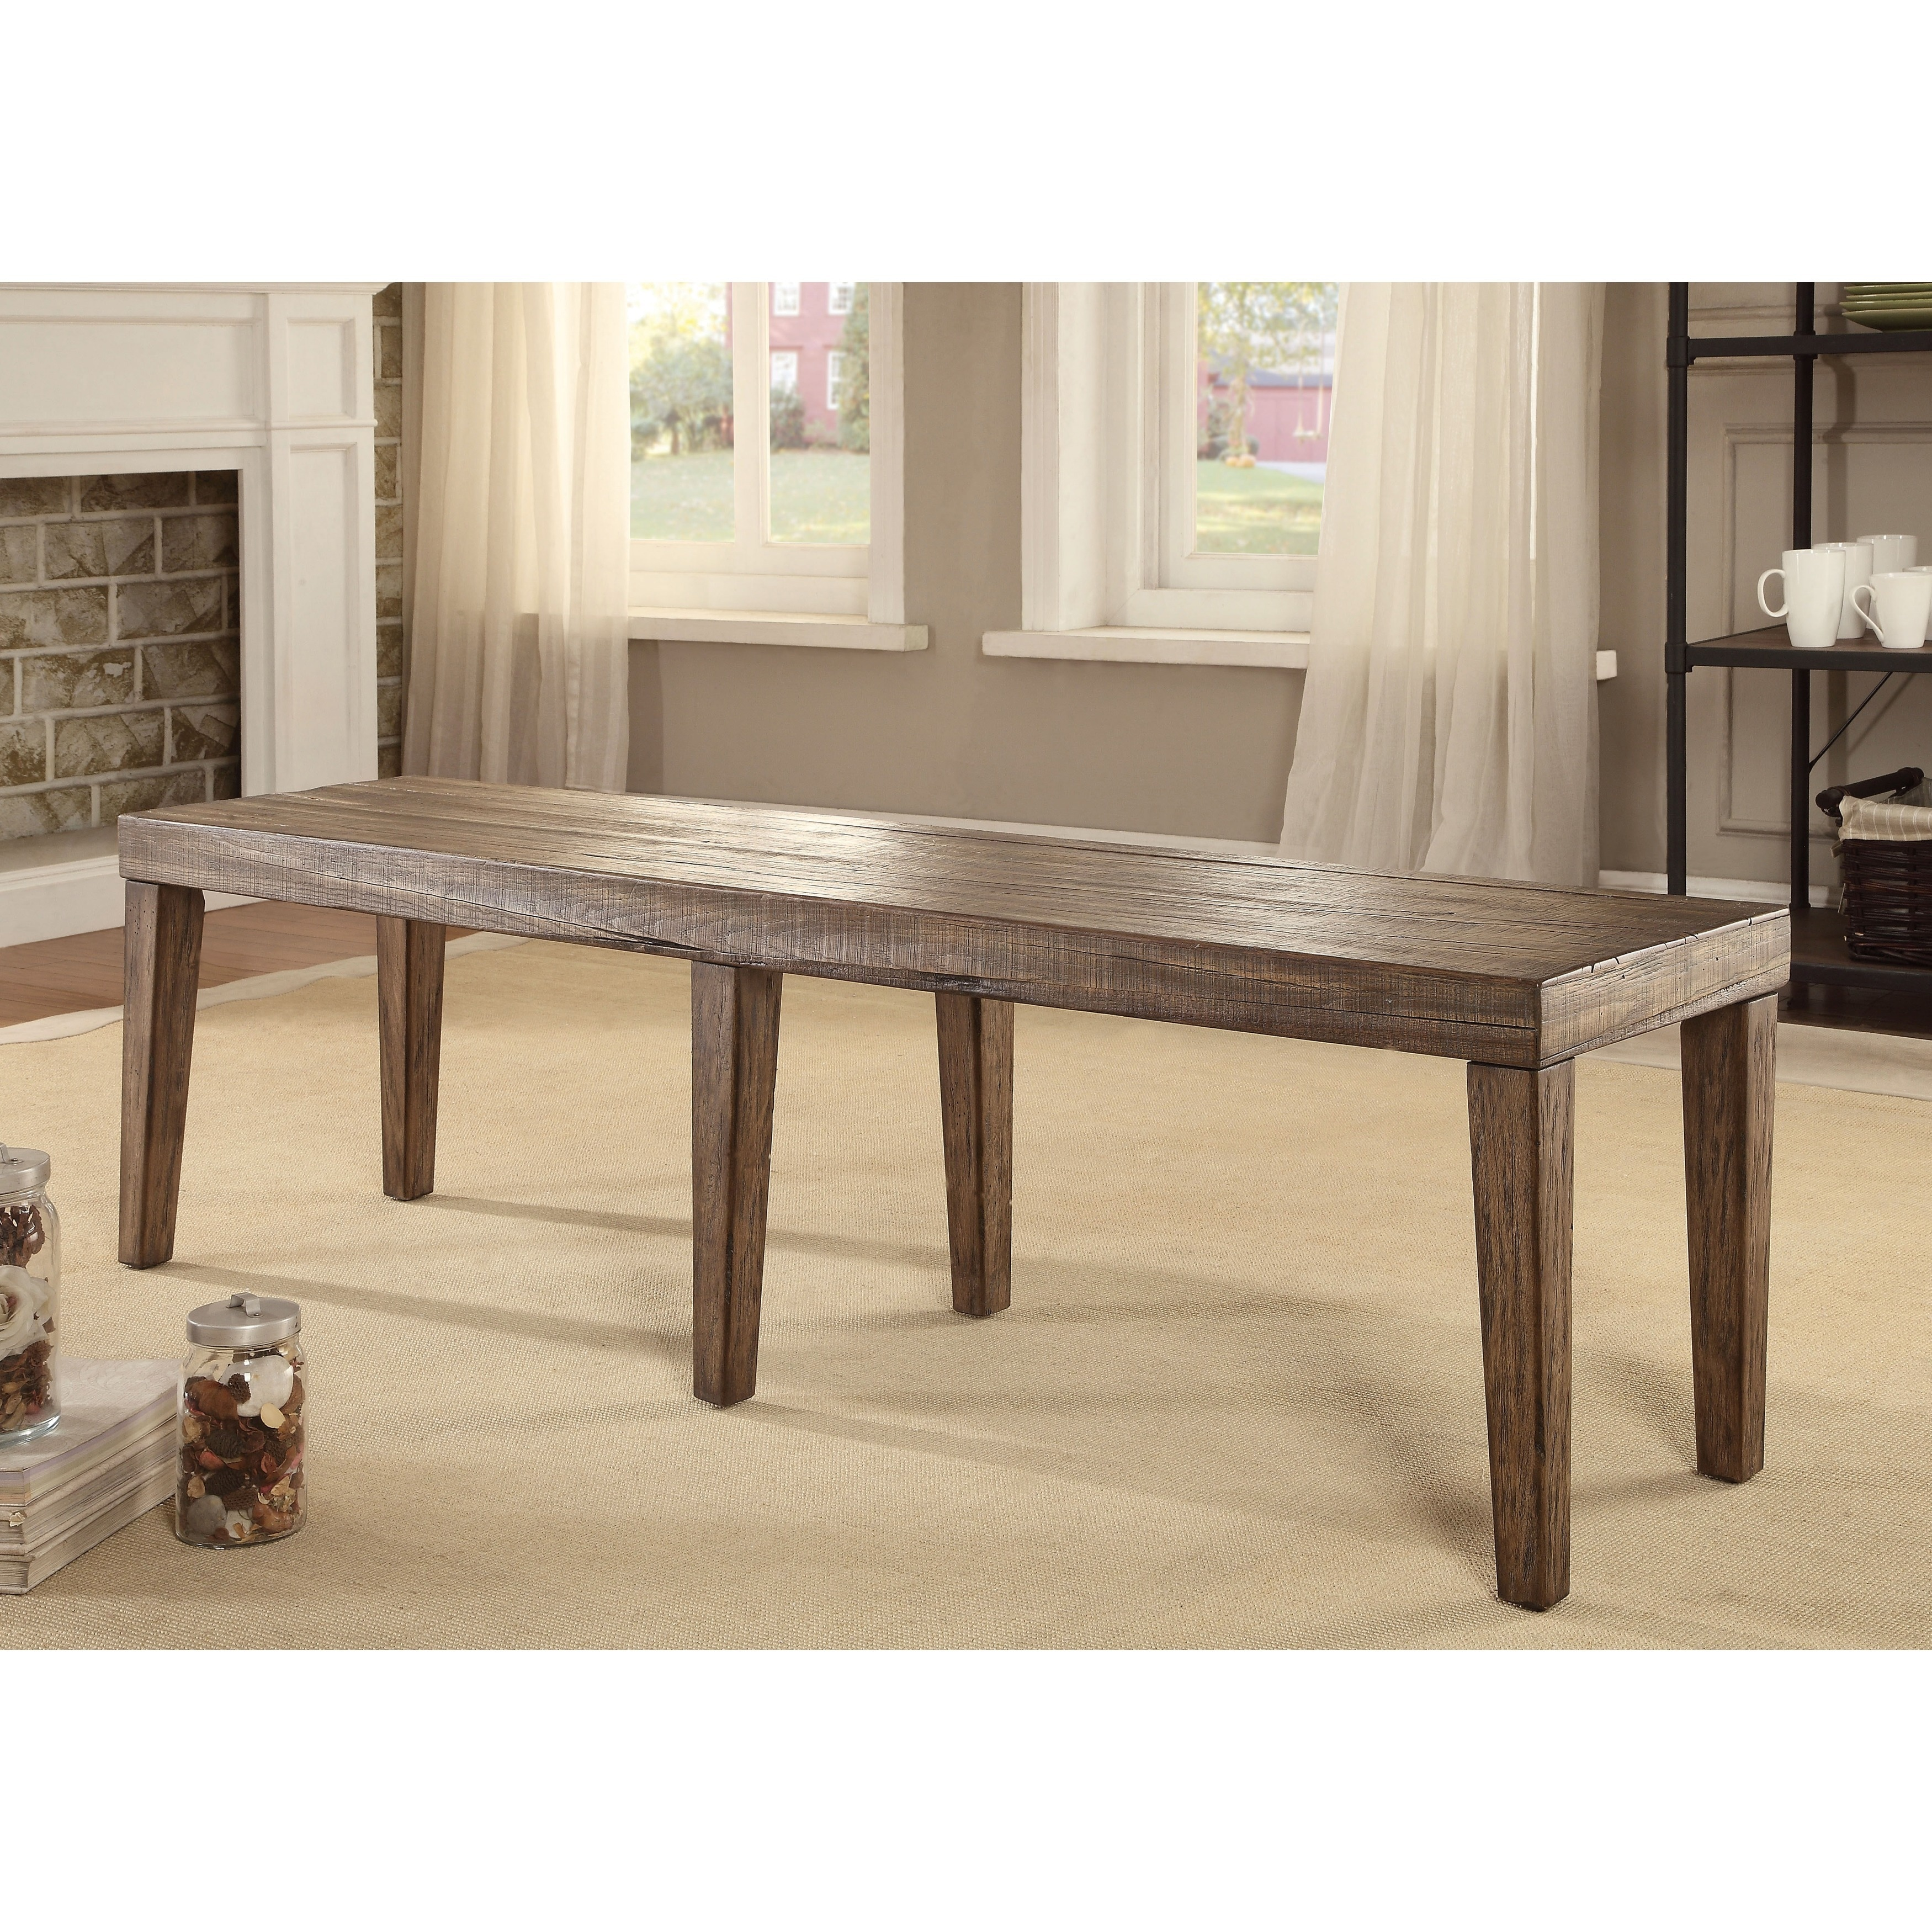 Furniture of America Bailey Rustic Weathered Elm Dining B...